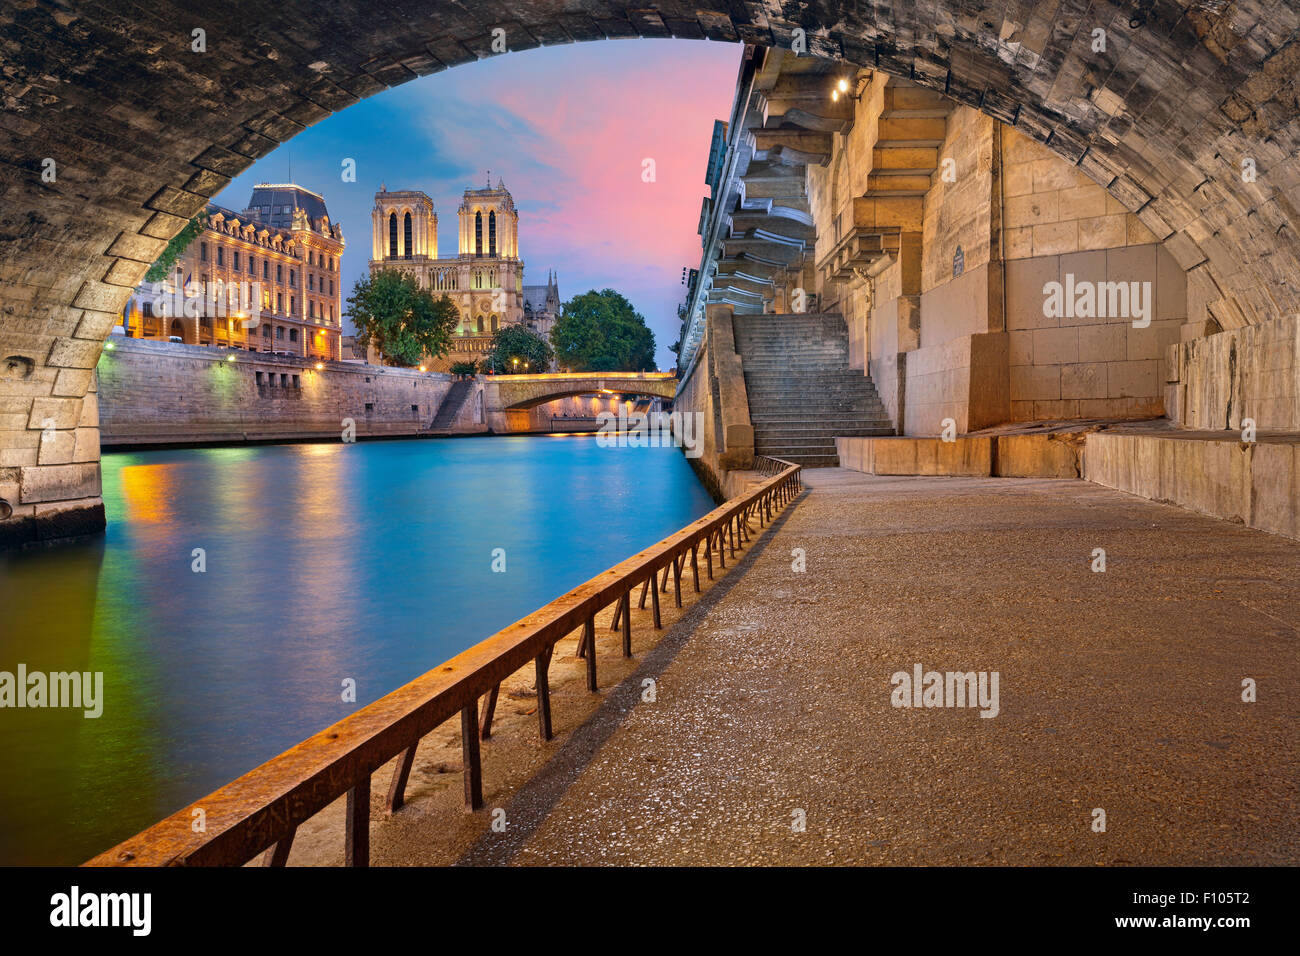 Paris.  Image of the Notre-Dame de Paris Cathedral and riverside of Seine river in Paris, France. - Stock Image